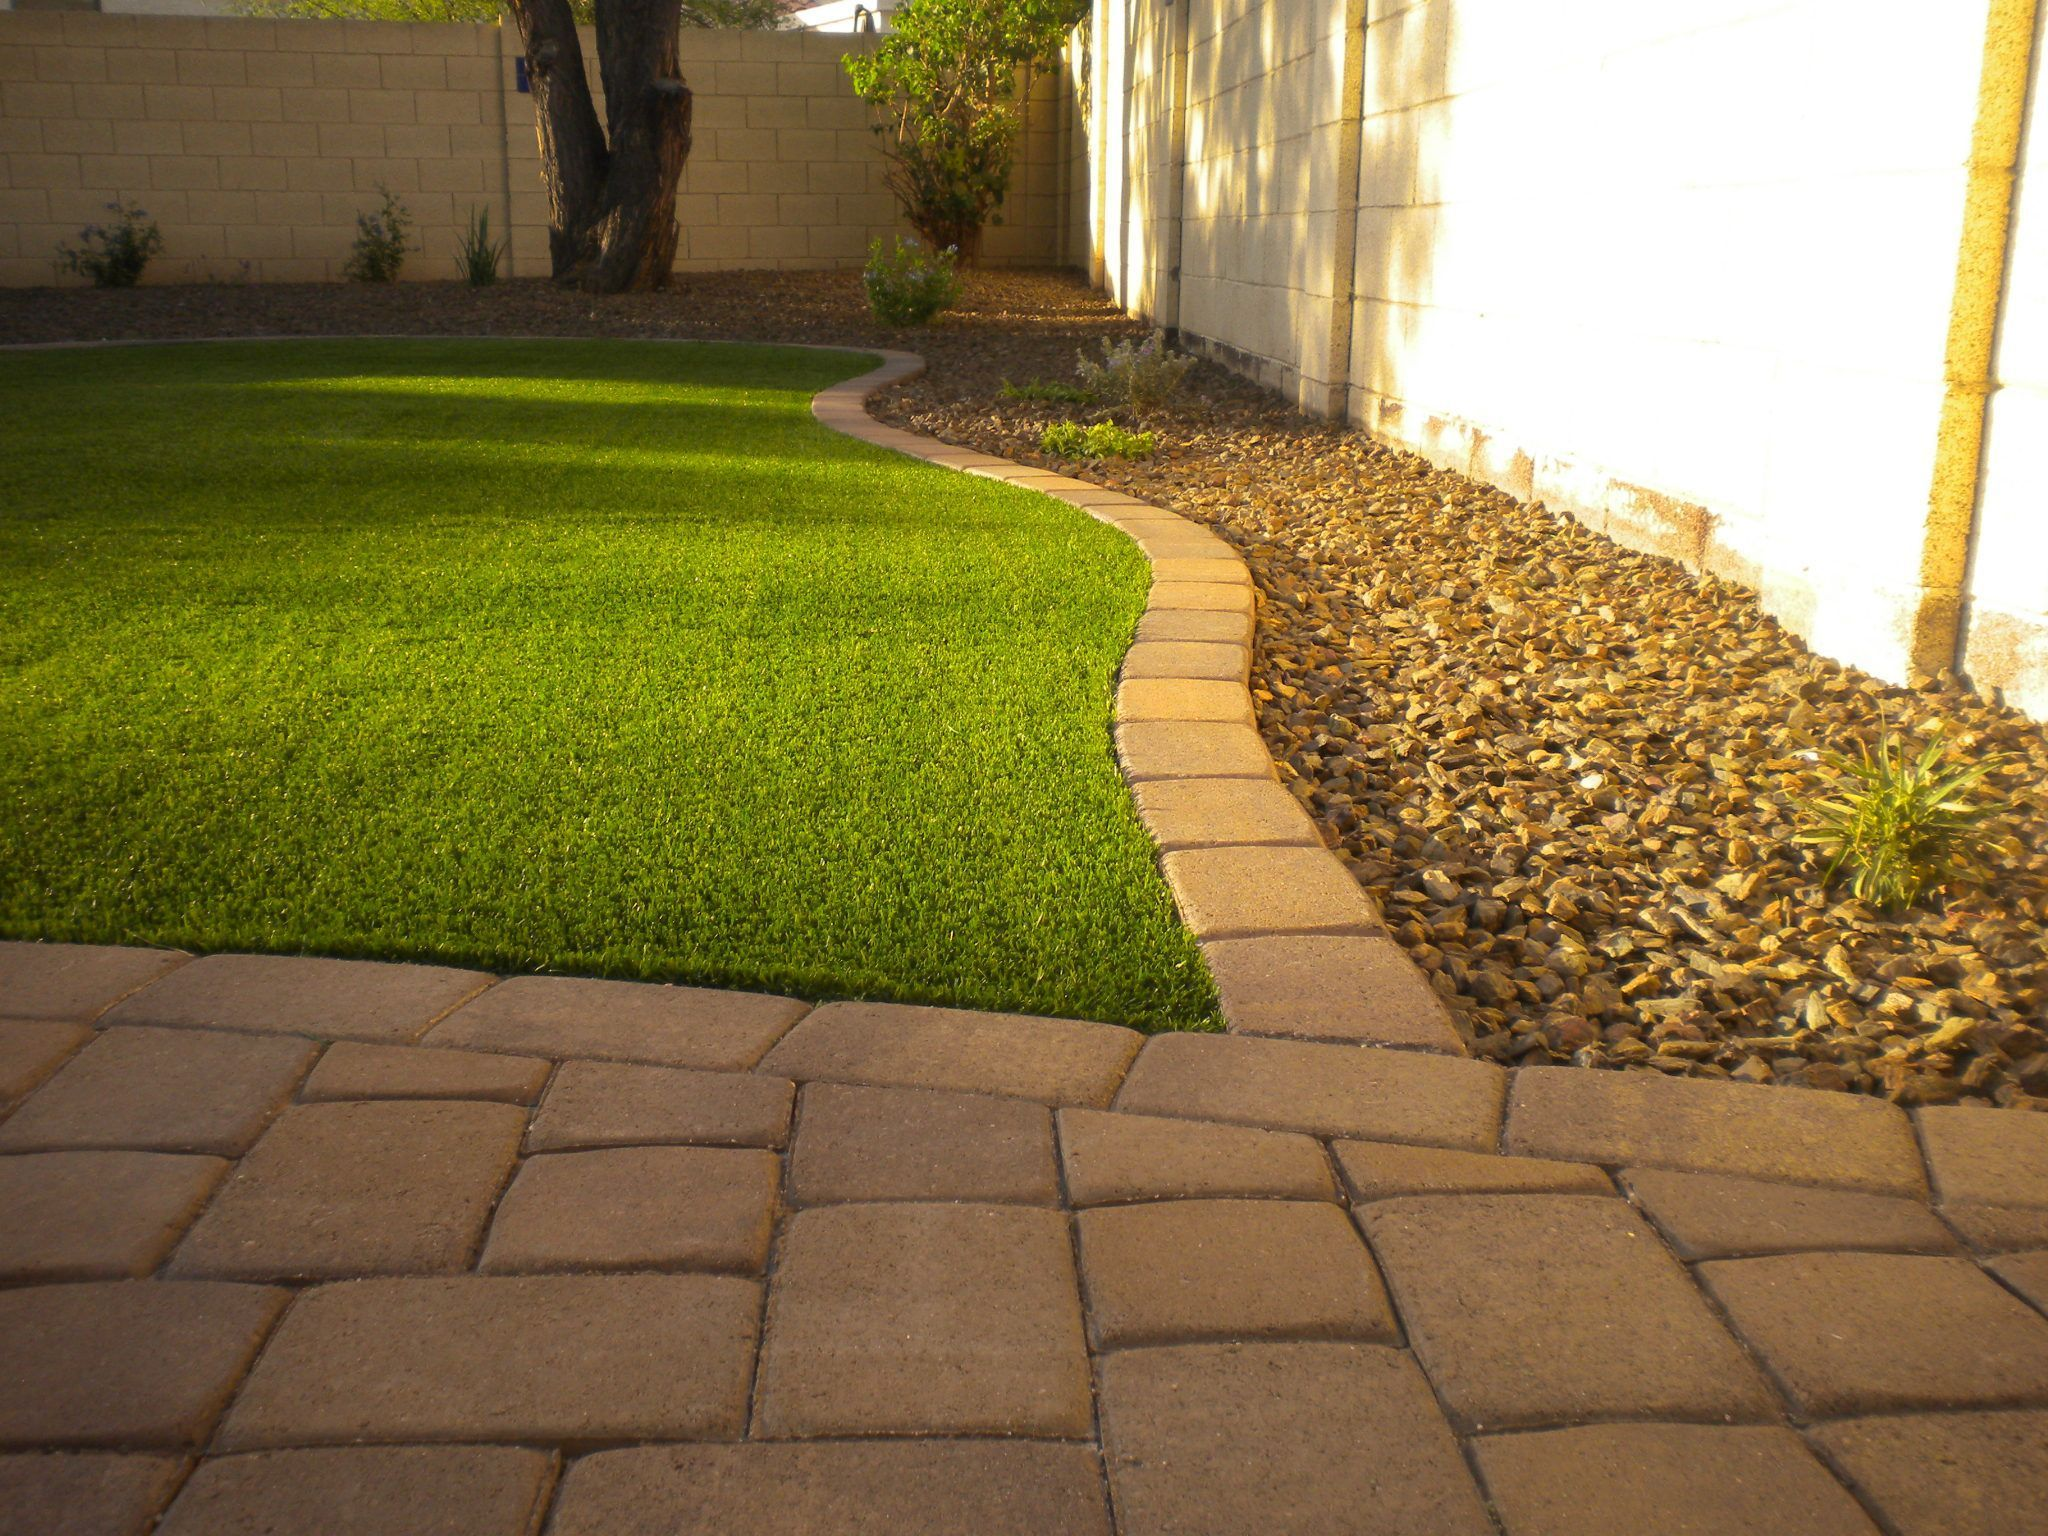 Artificial Turf & Pavers | Artificial turf, Backyard ideas ... on Artificial Turf Backyard Ideas id=51909